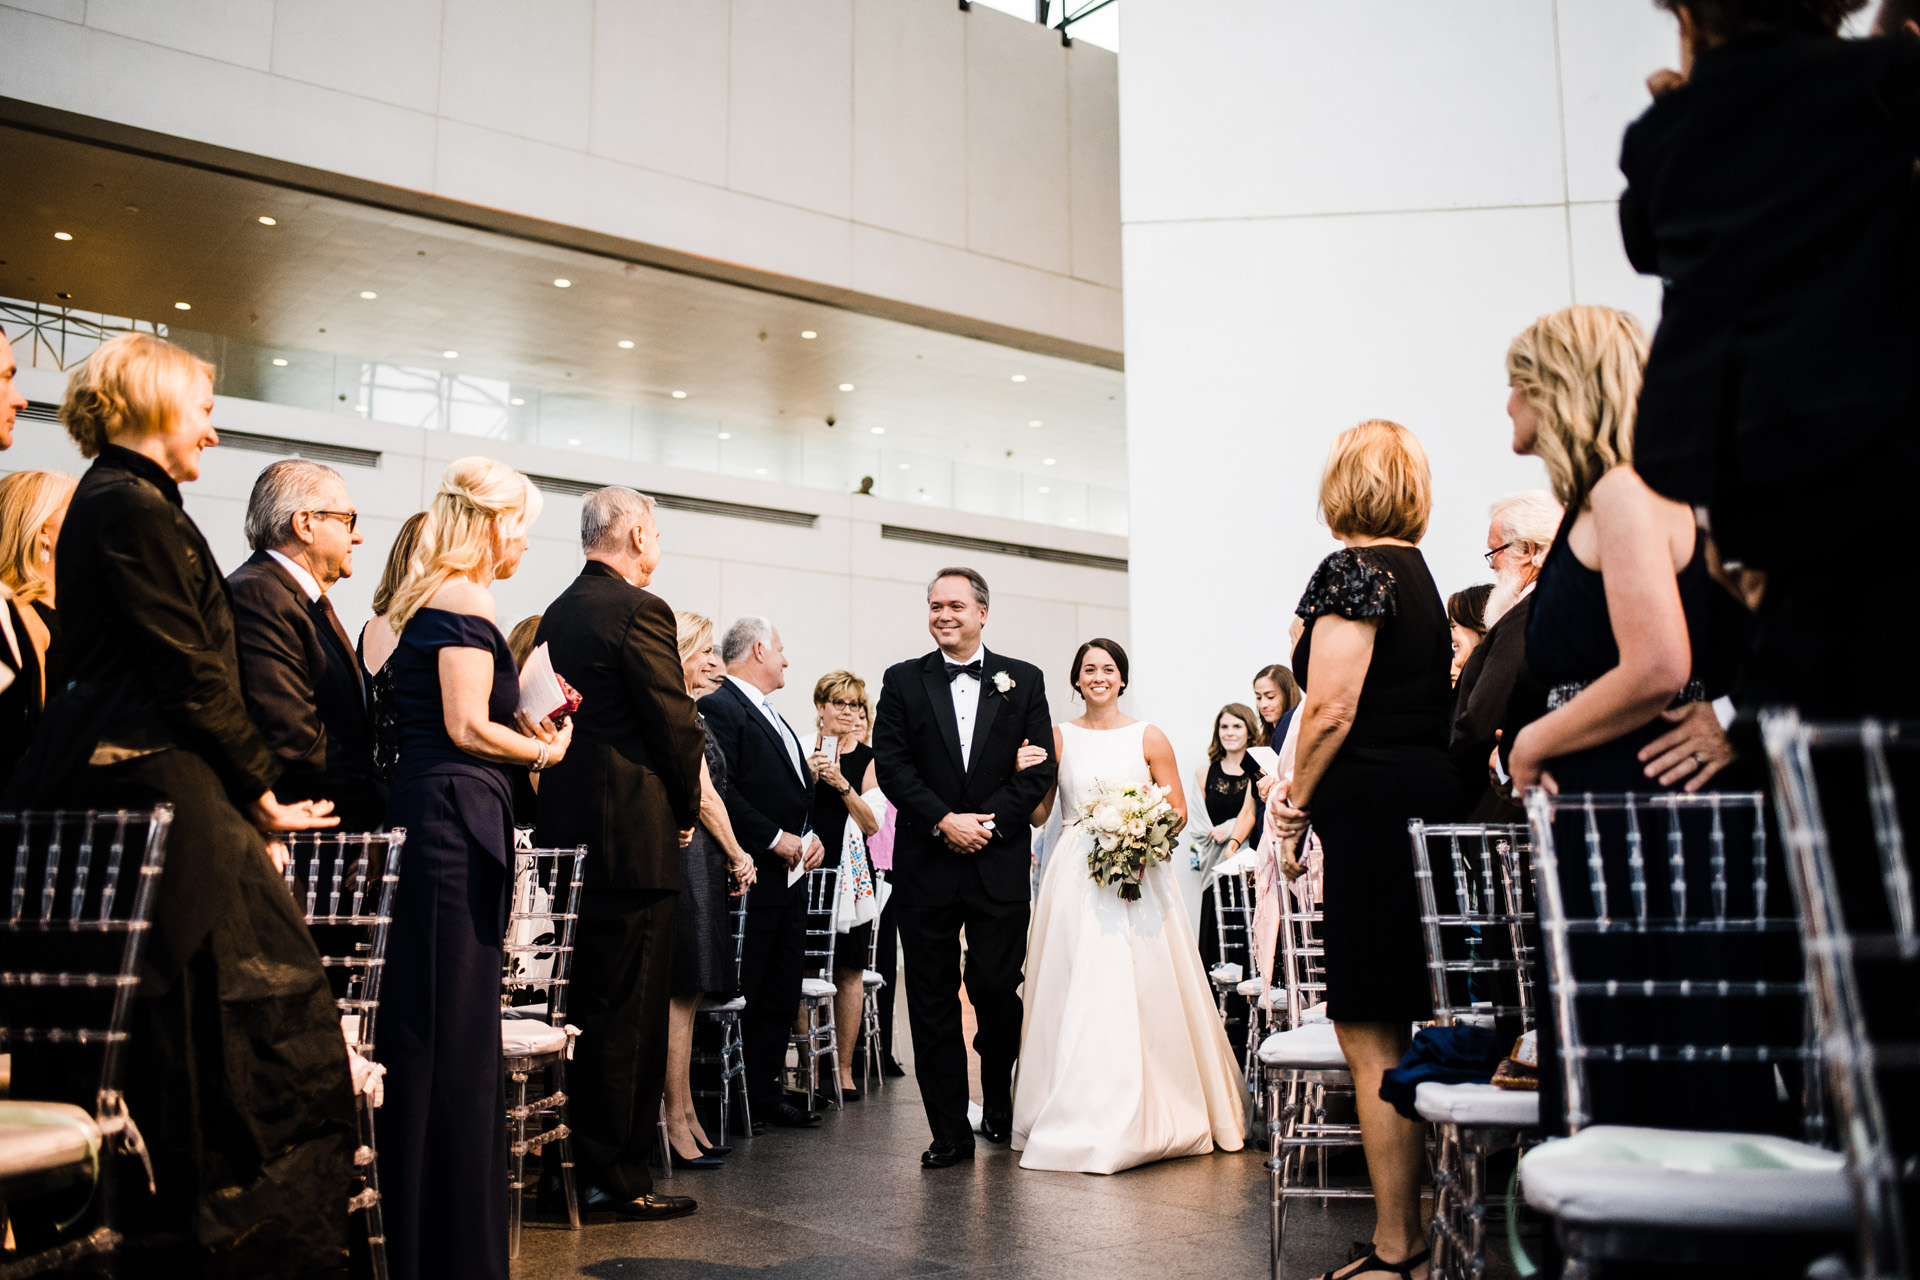 jfk-museum-wedding-photographer-46